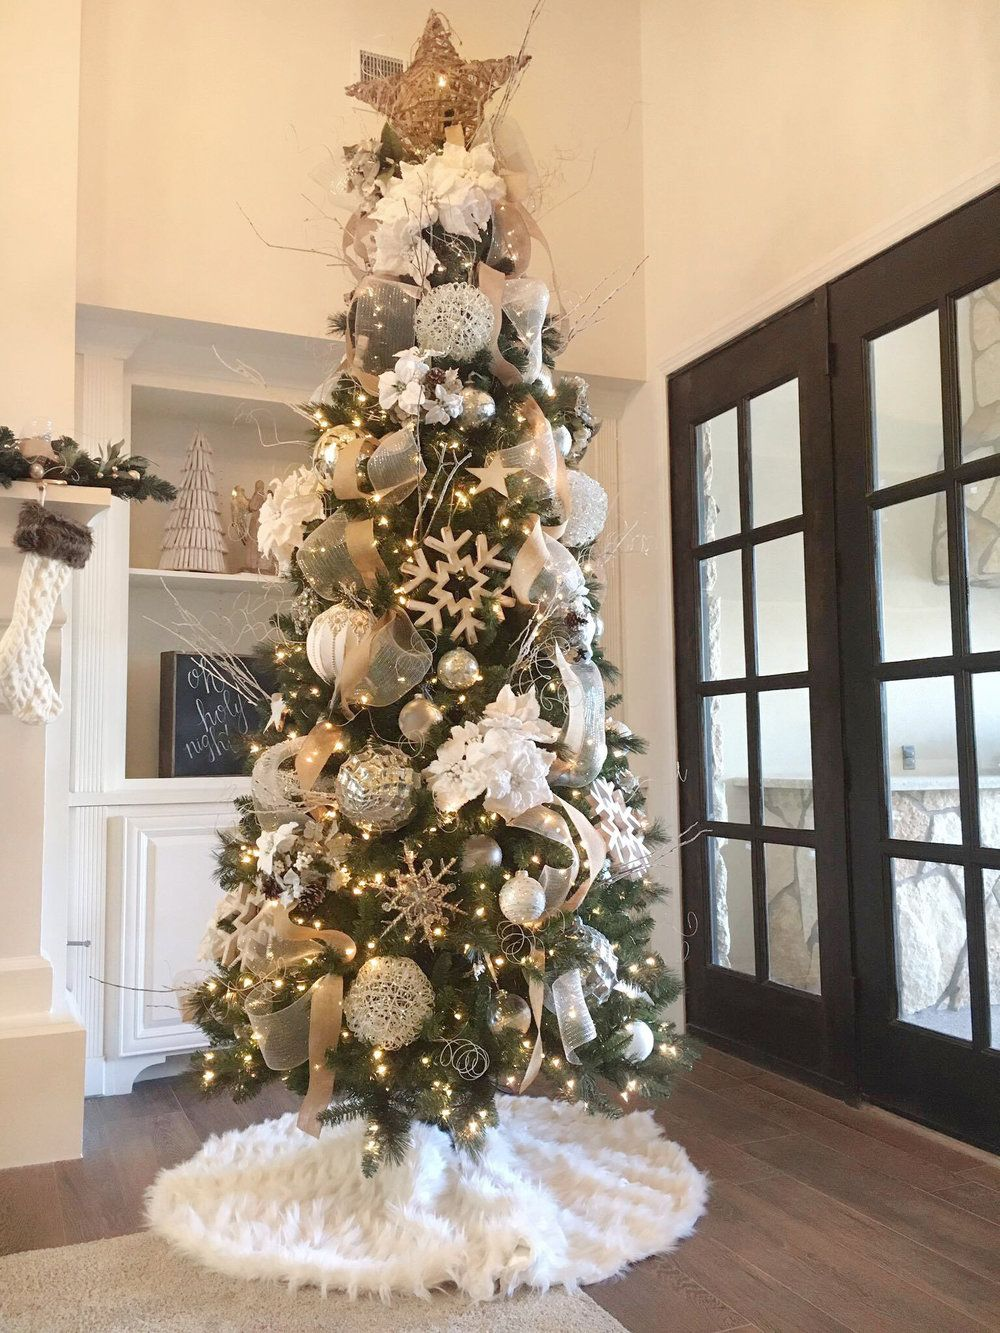 Our Home For The Holidays Brigitte Linford Slim Christmas Tree Christmas Tree Inspiration White Christmas Trees